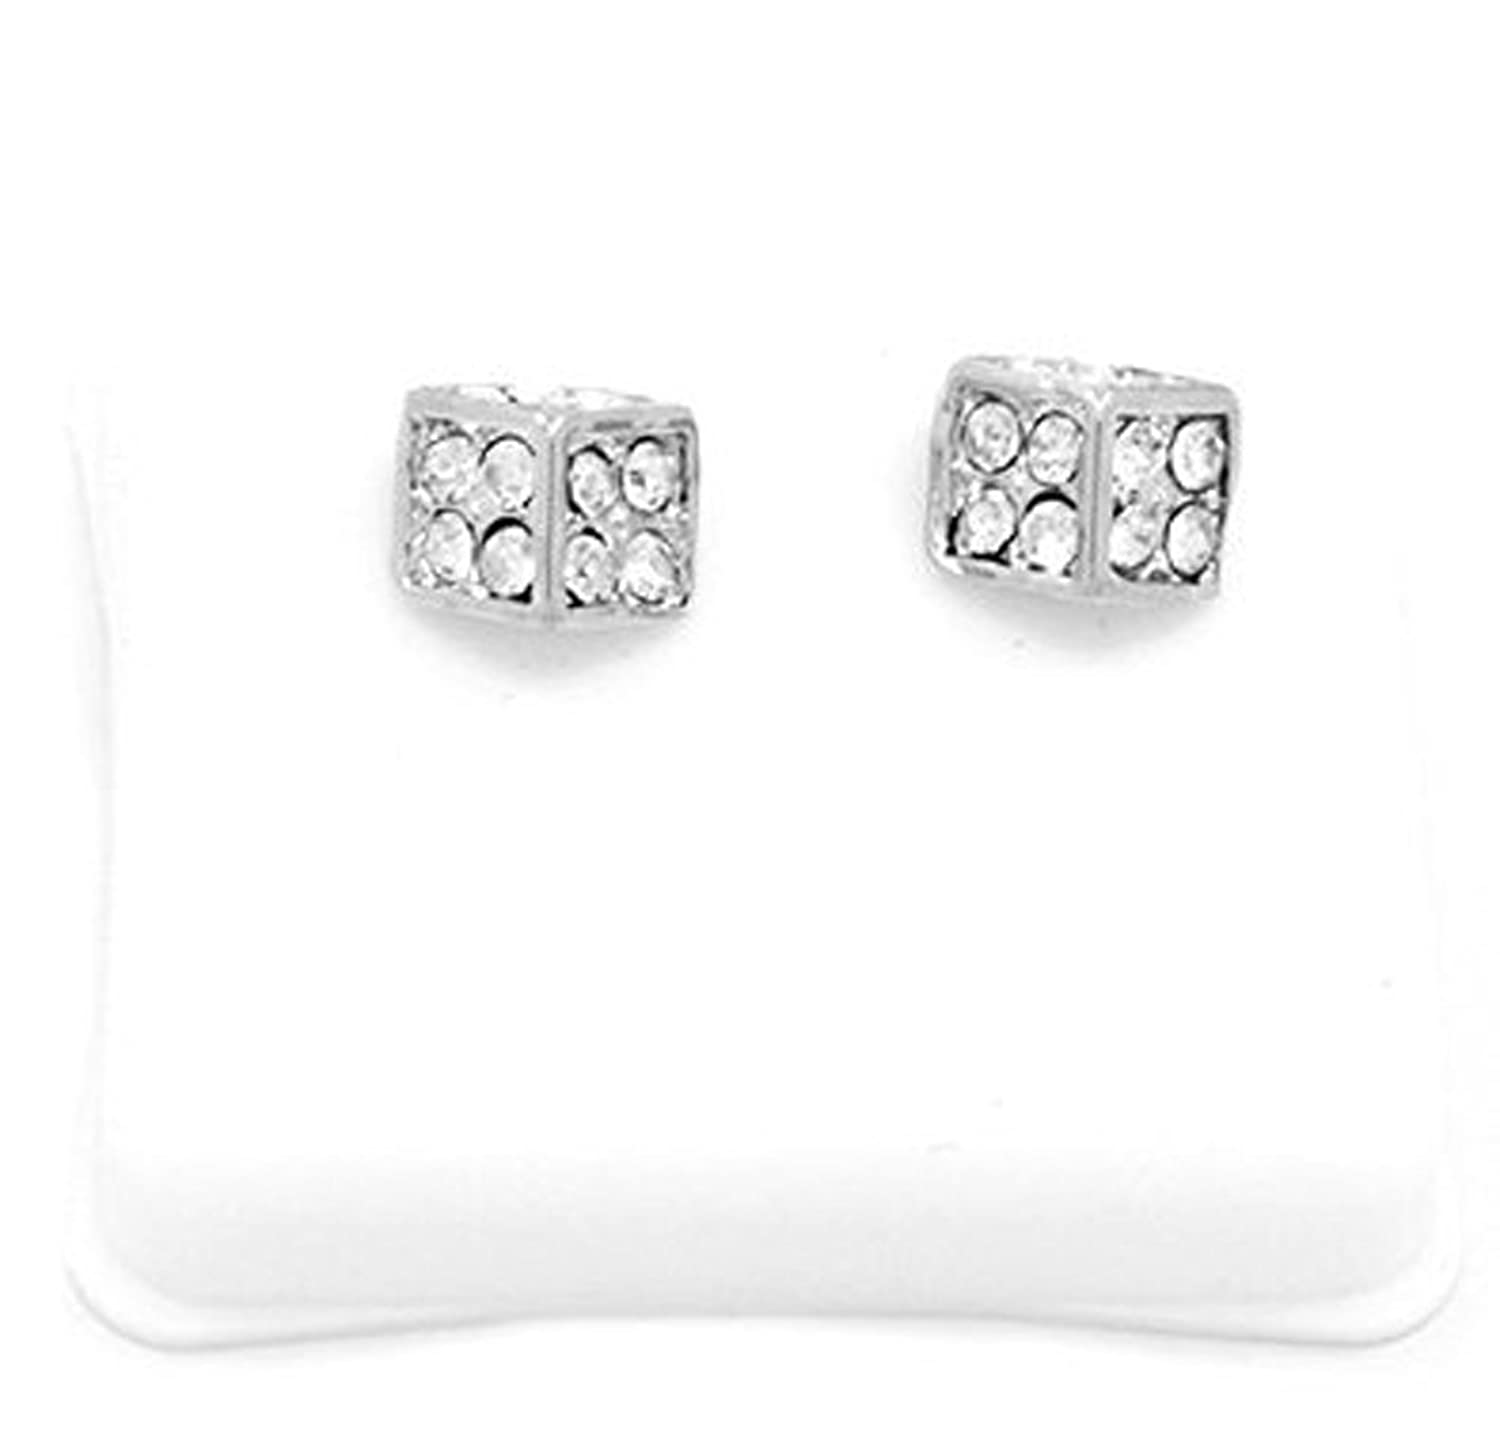 Mens Platinum Tone Cz Micro Pave Iced Out Hip Hop 10mm Dice Stud Earrings Bullet Backs